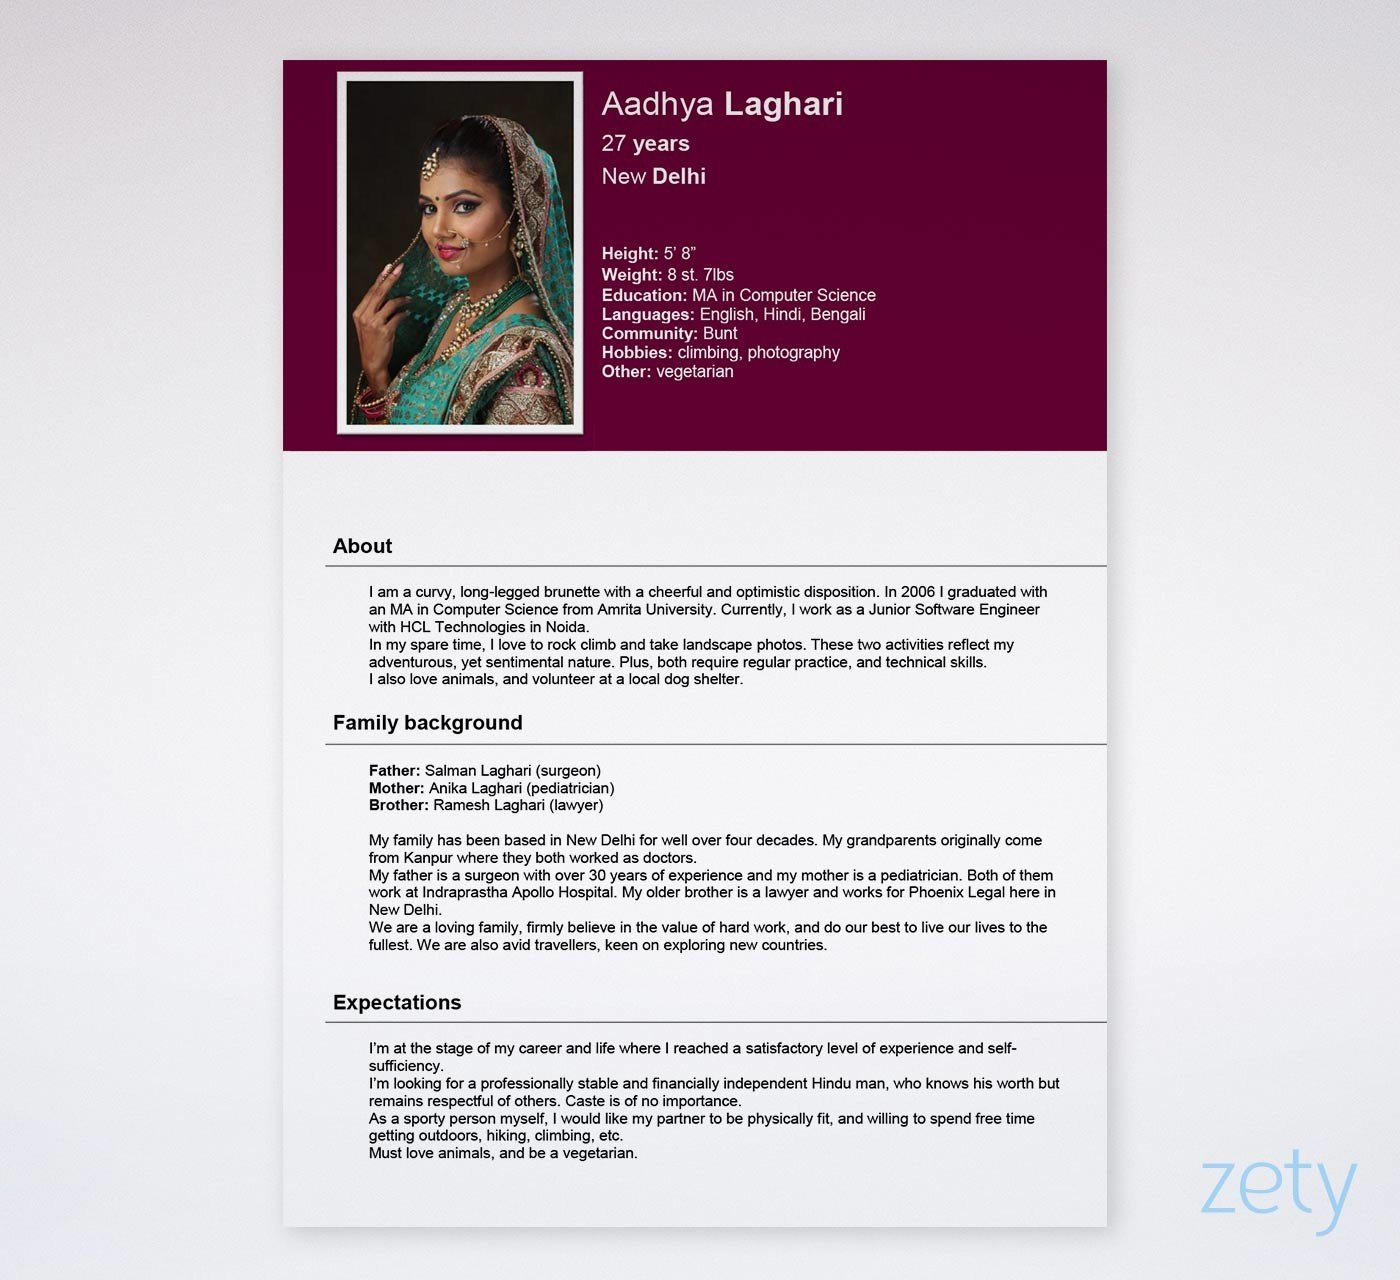 biodata format  free templates for a job  u0026 marriage  free